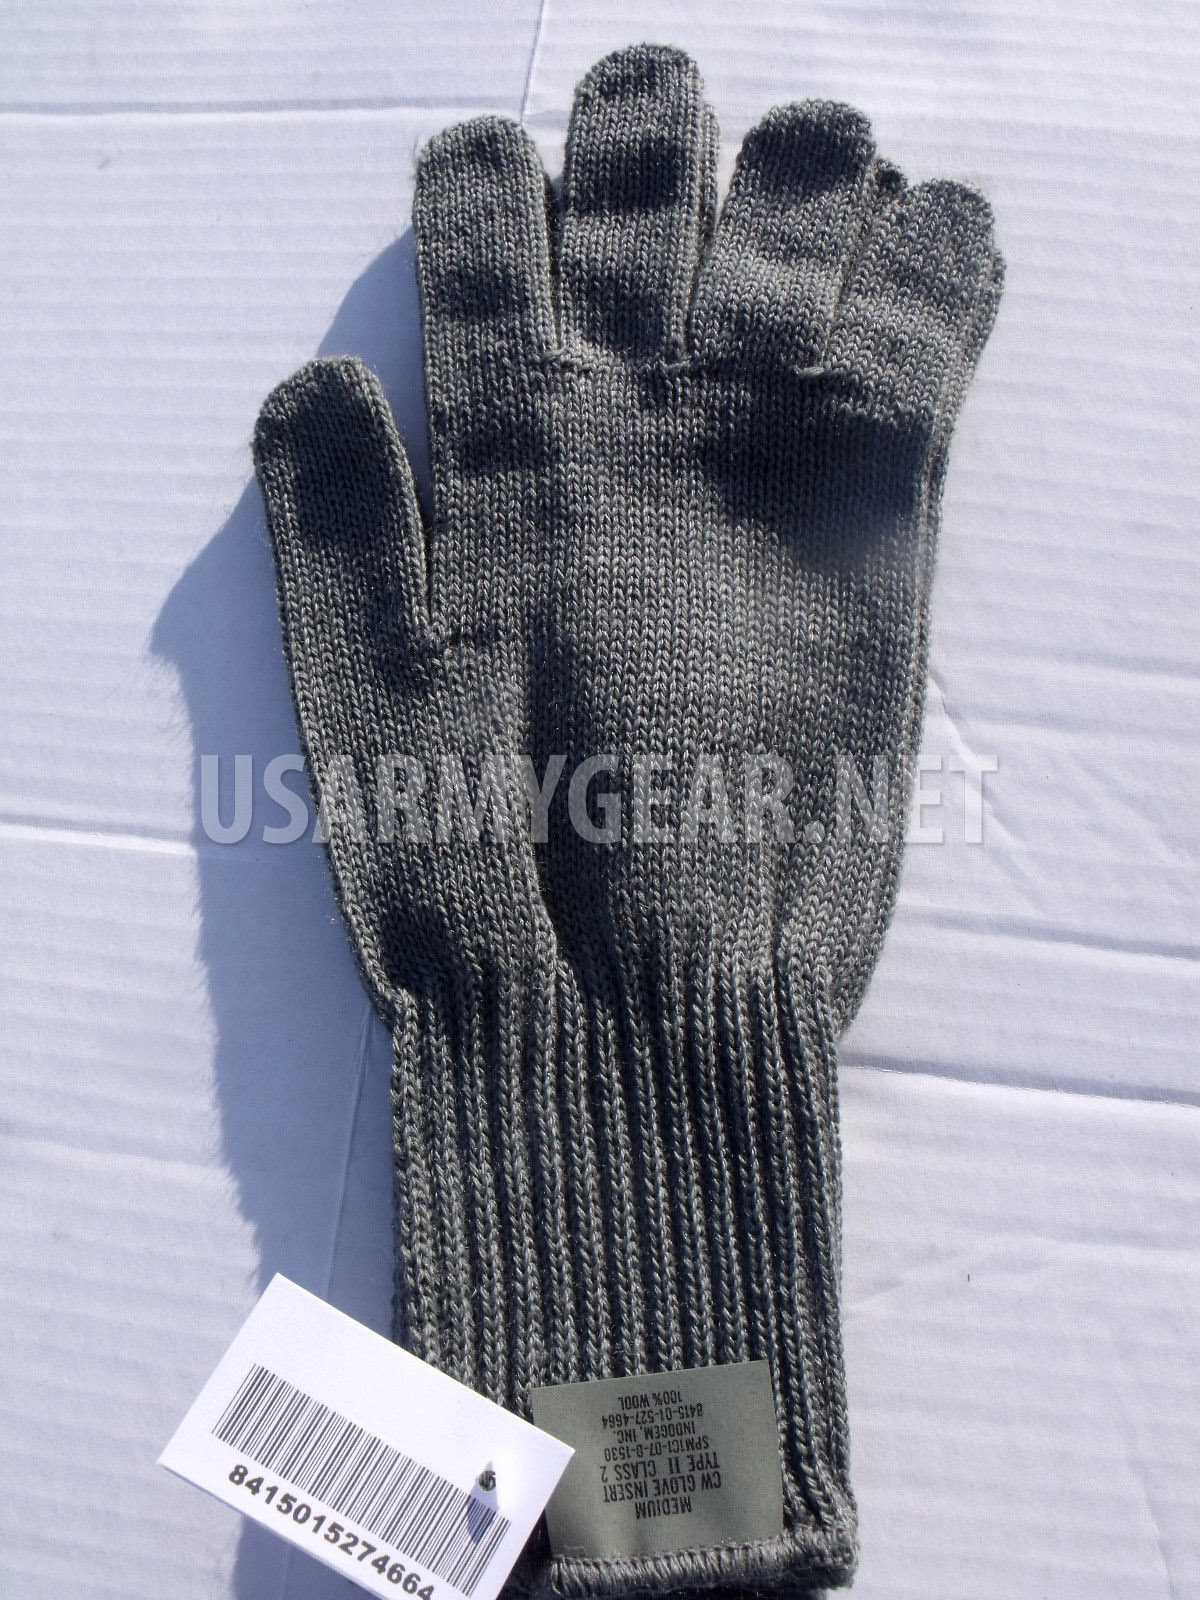 US Army USMC Foliage Green CW Lightweight Glove Insert Medium M   wear as  Gloves 5cfa07d30d